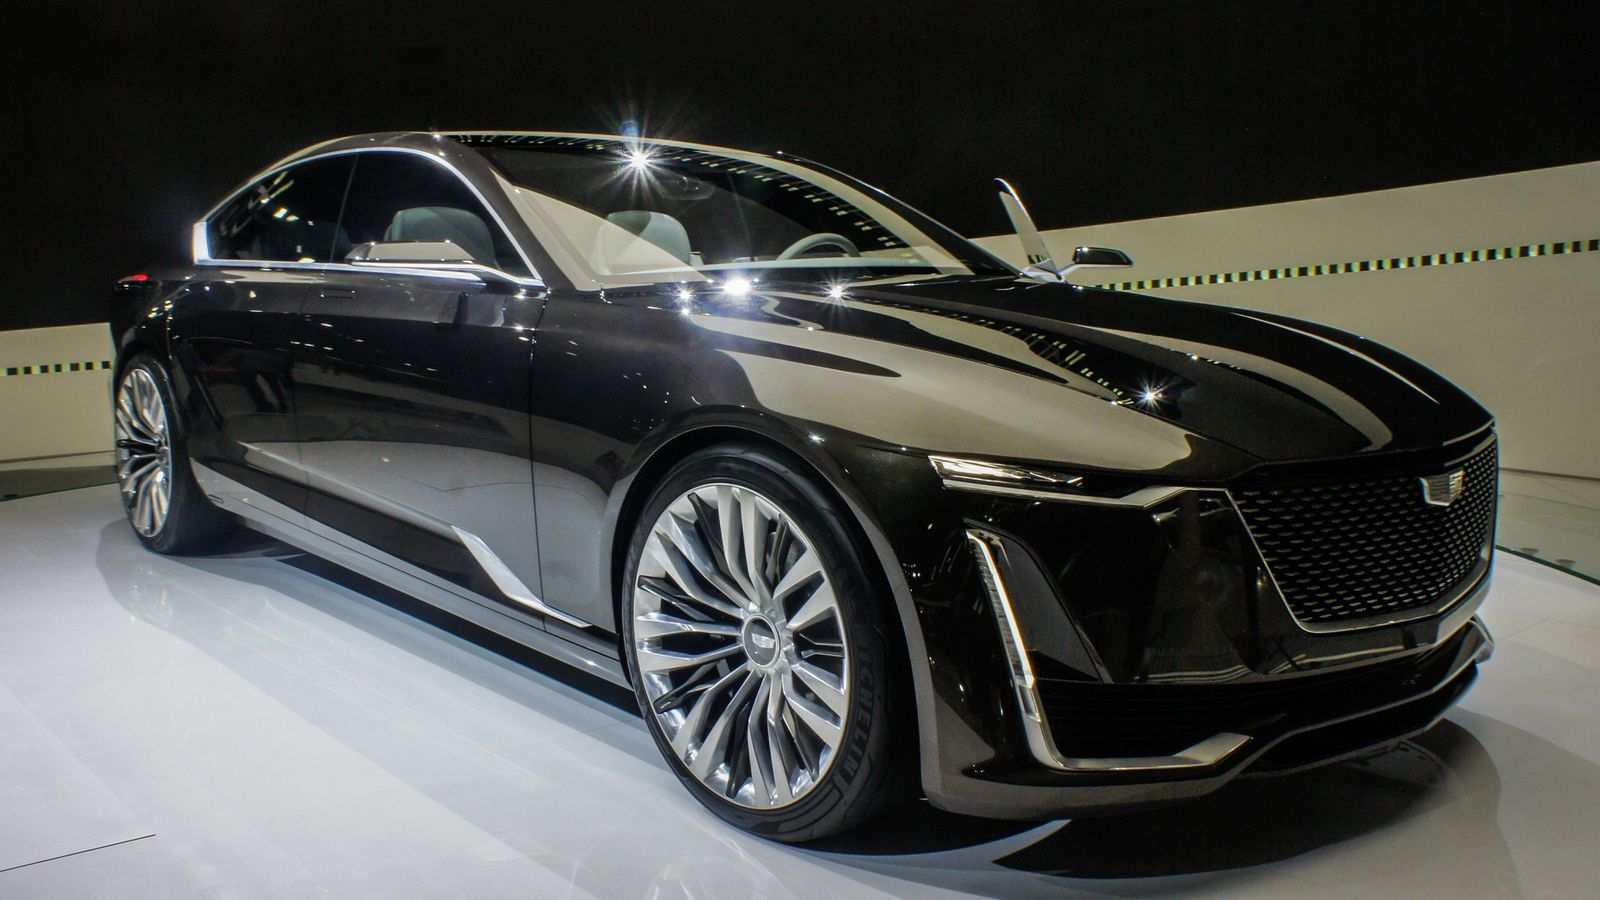 95 Best Review Cadillac Flagship 2020 Specs and Review by Cadillac Flagship 2020